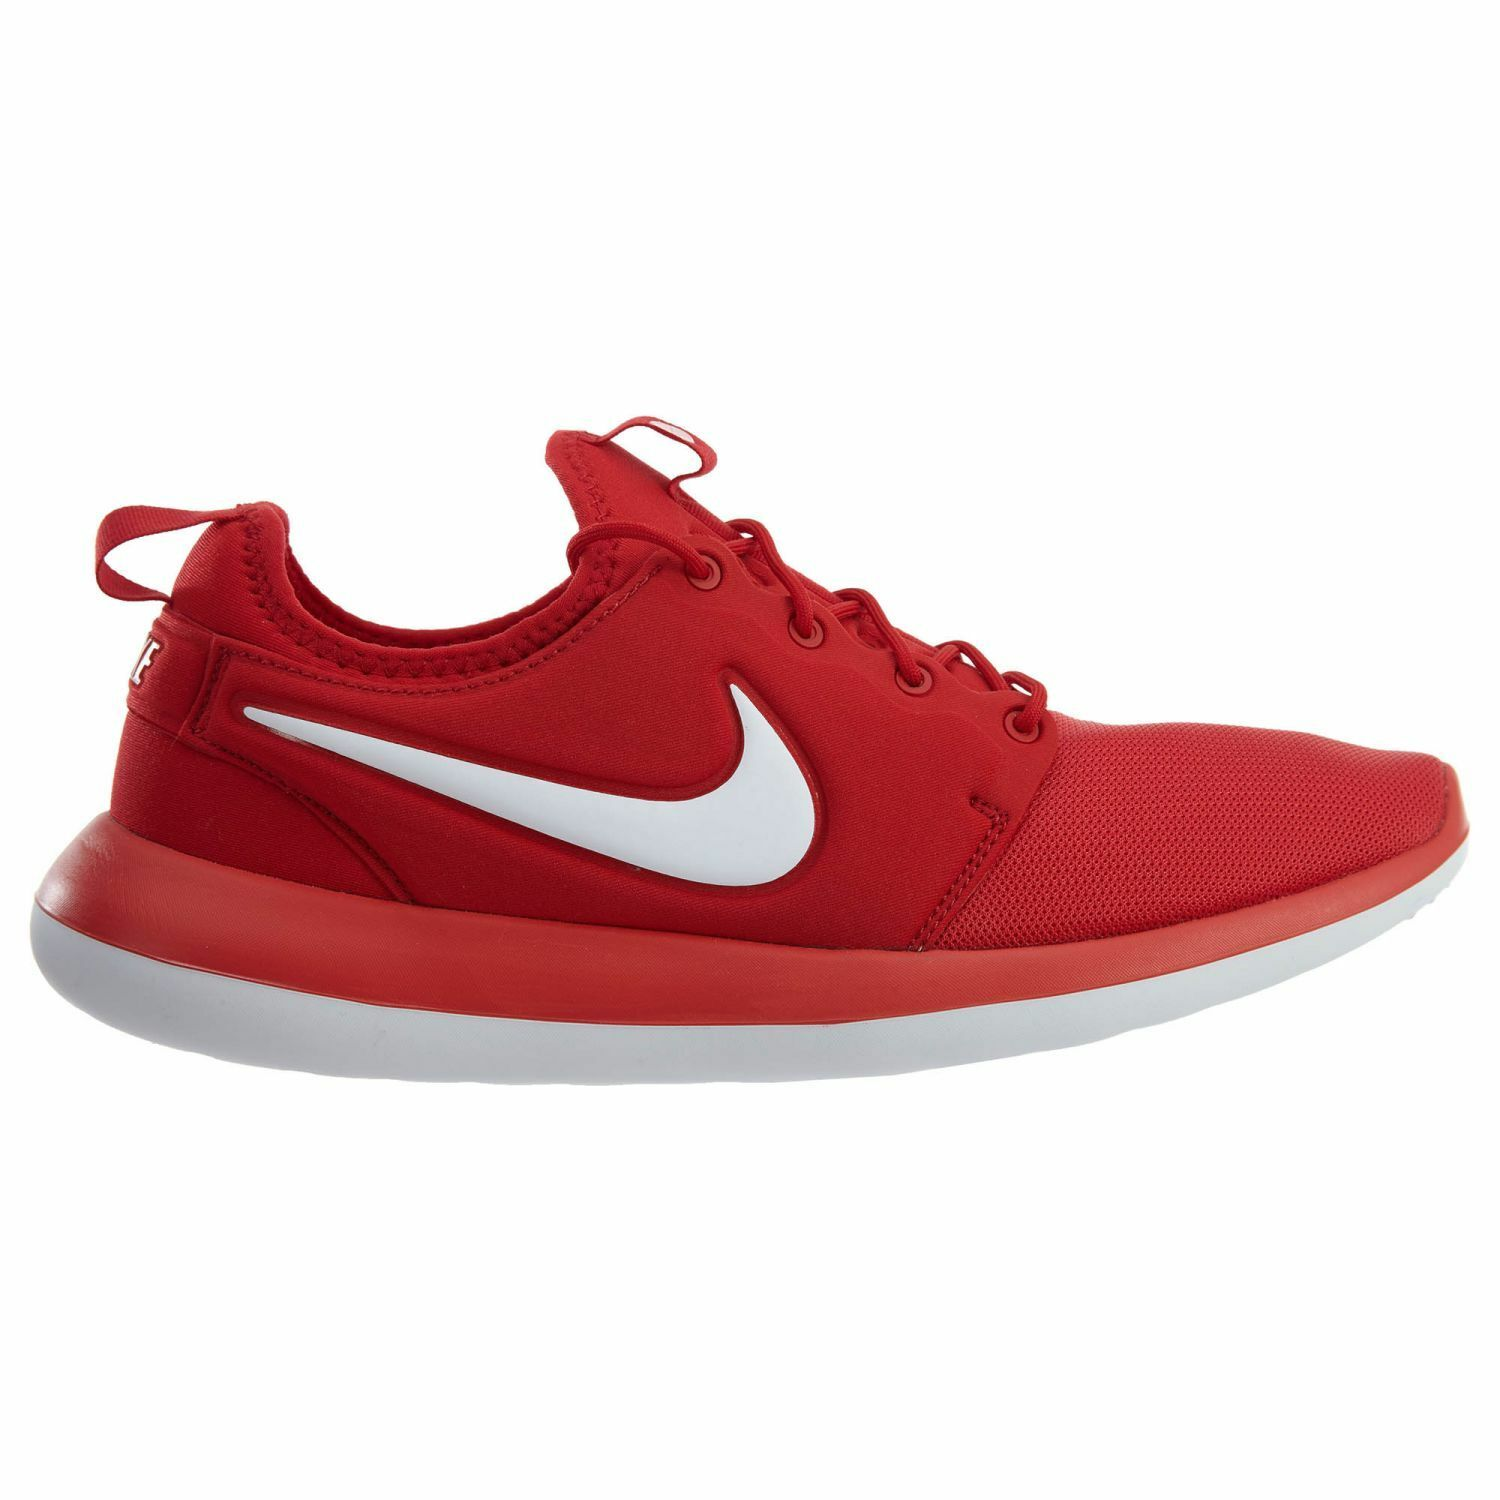 Nike Roshe Two Mens 844656-601 University Red Textile Running Running Running shoes Size 8 48ae17